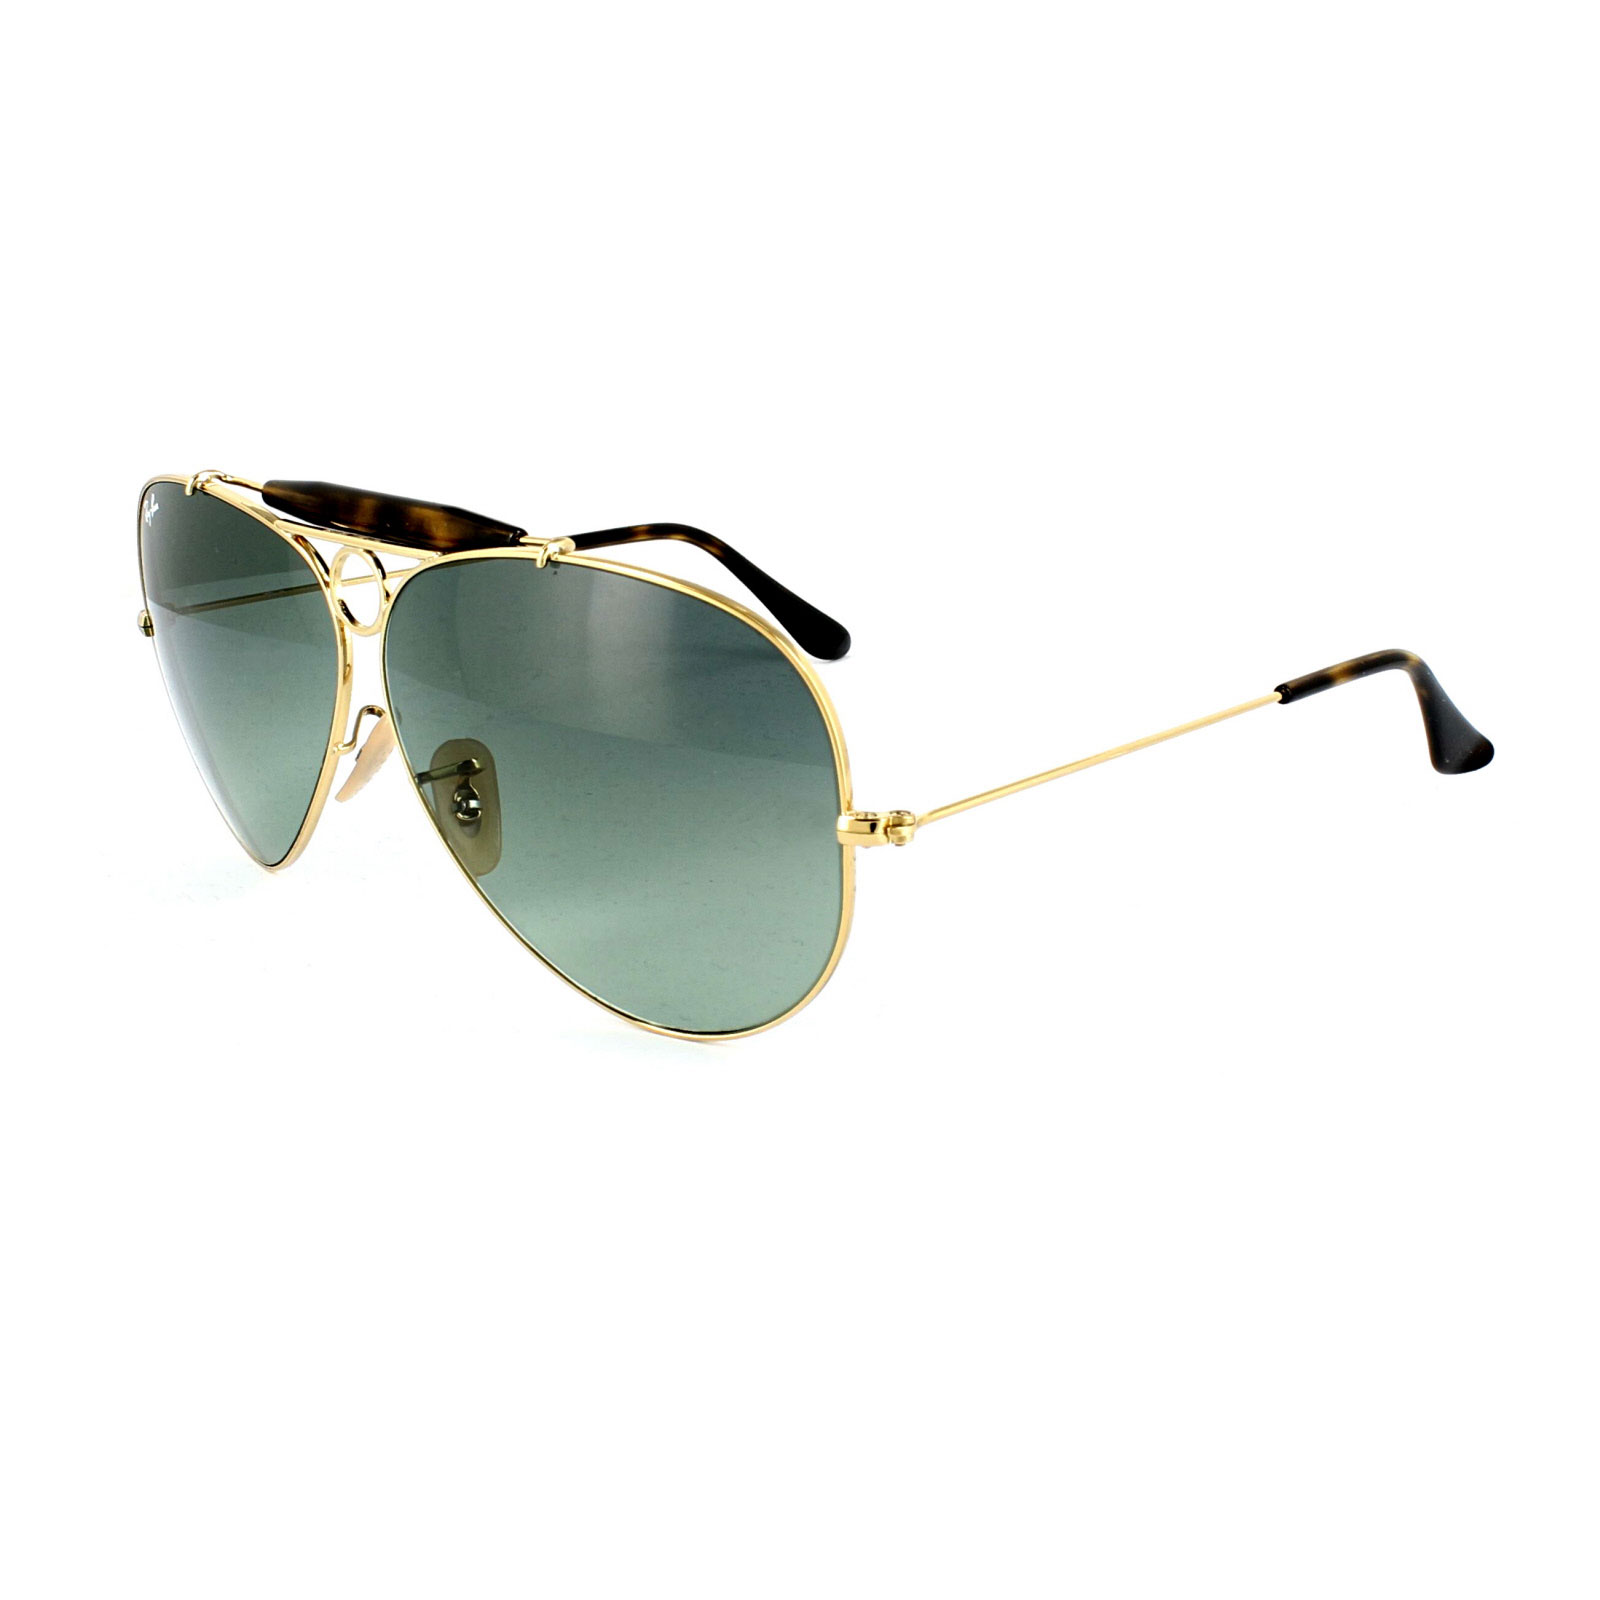 Ray-Ban RB3138 181/71 62 mm/9 mm ynLMP2I